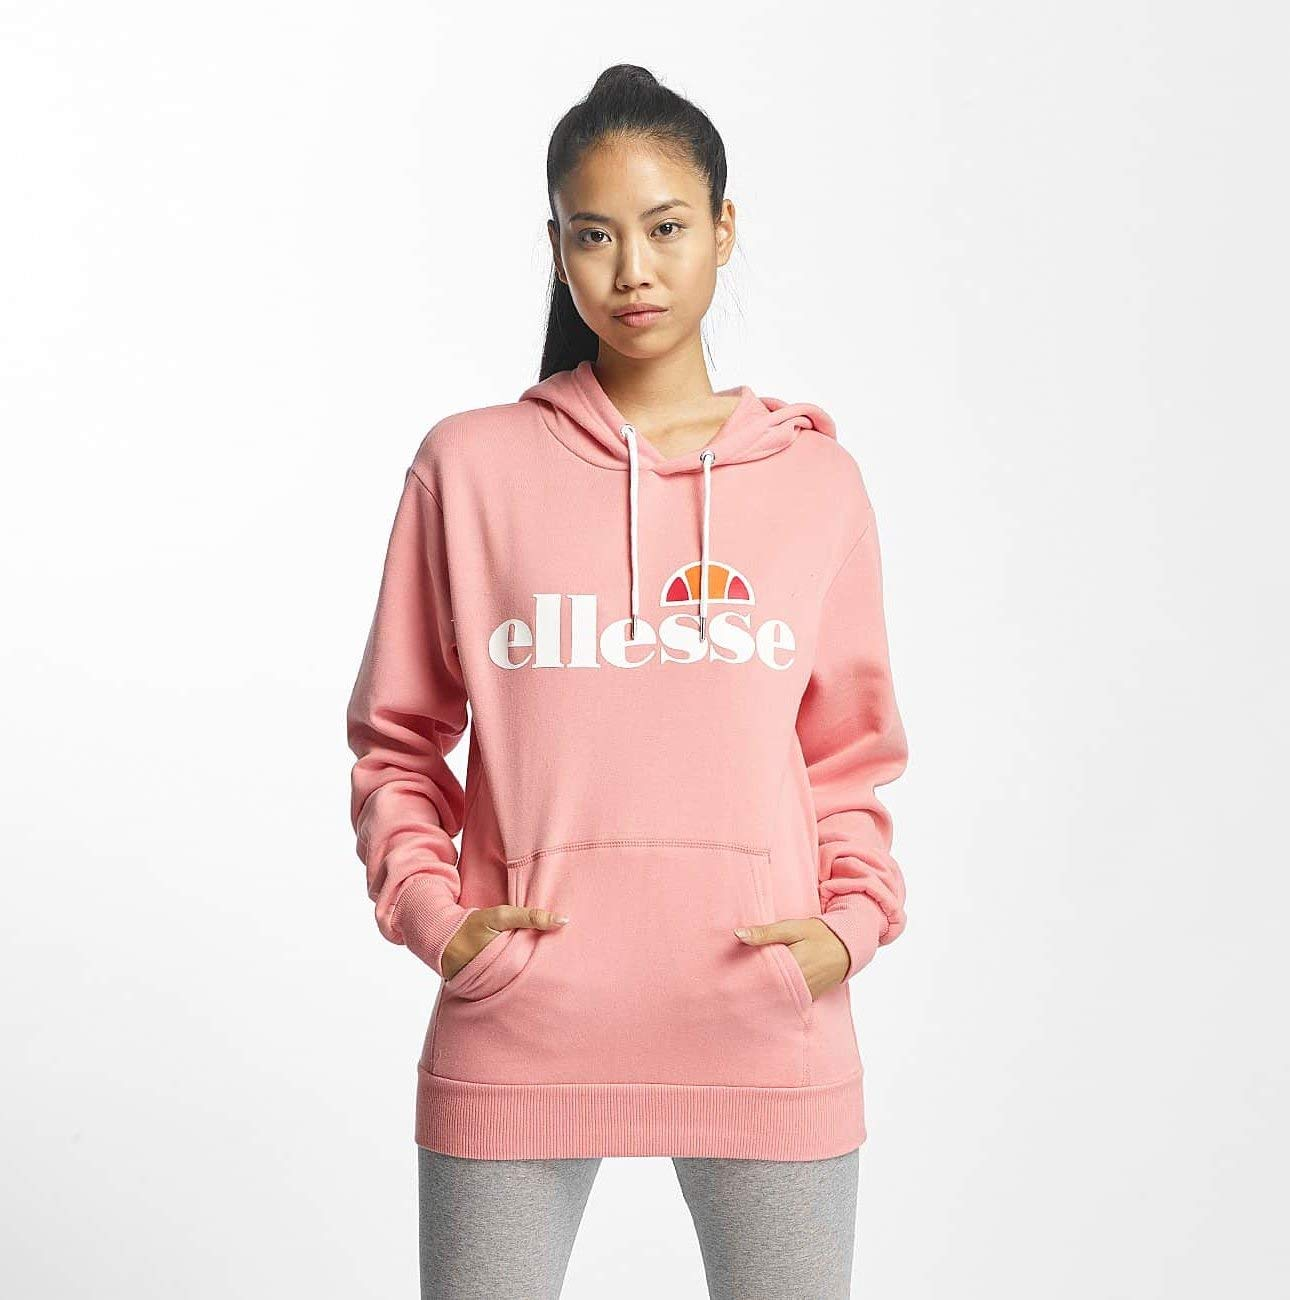 ellesse Women's Torices Sweatshirt SGS03344